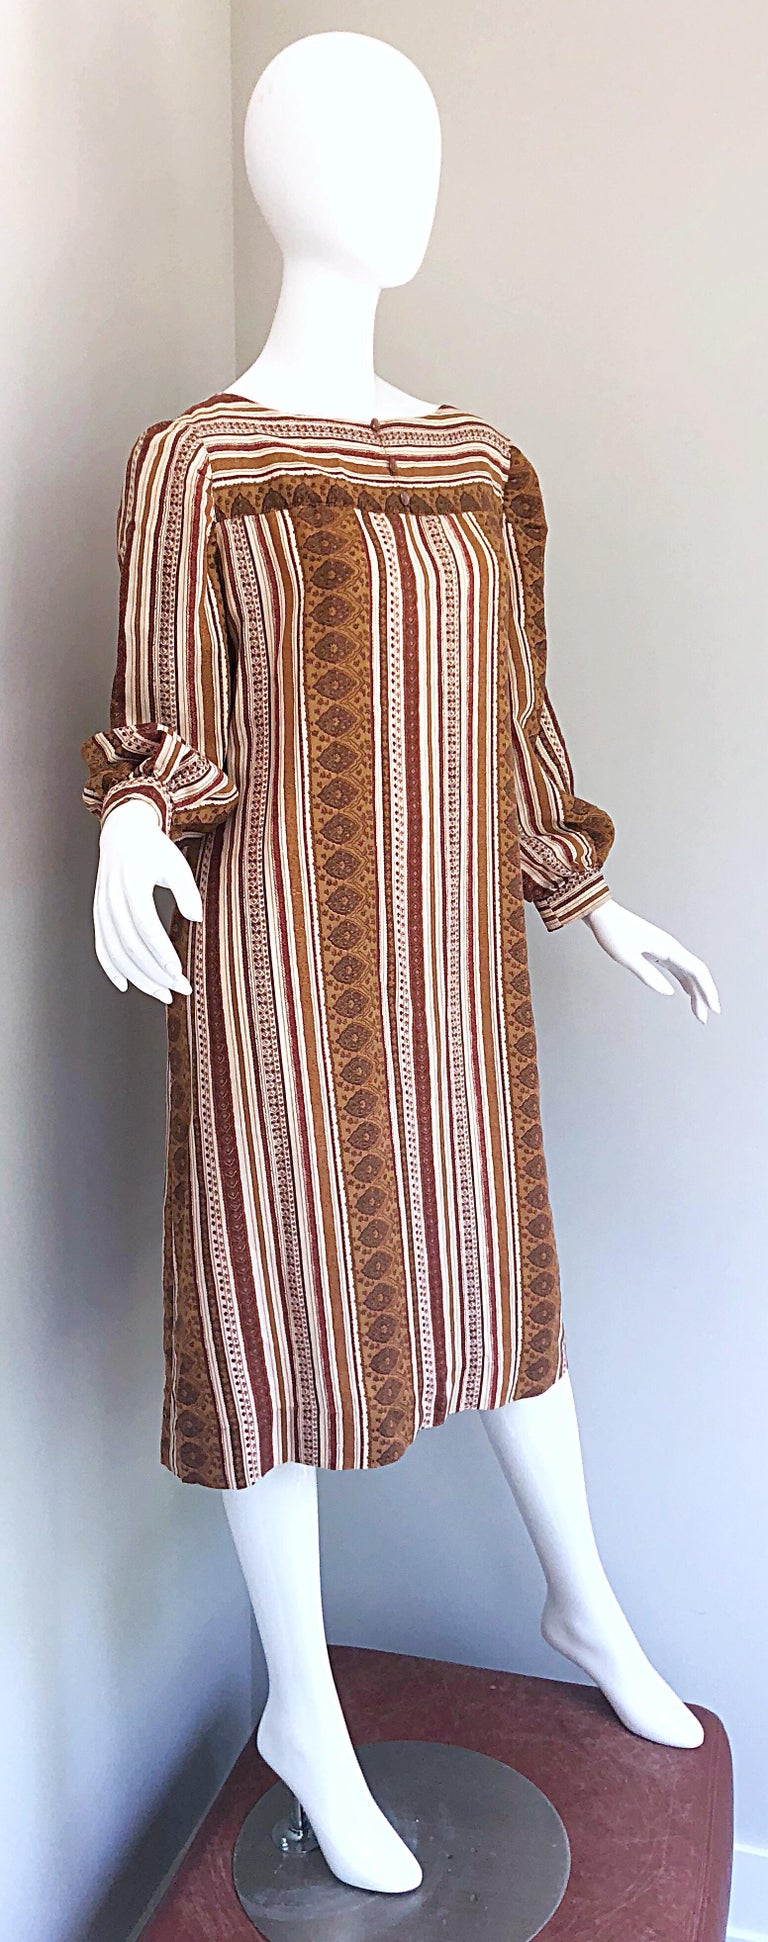 1970s Boho Chic Brown and Ivory Soft Cotton Paisley Print Vintage 70s Dress For Sale 8